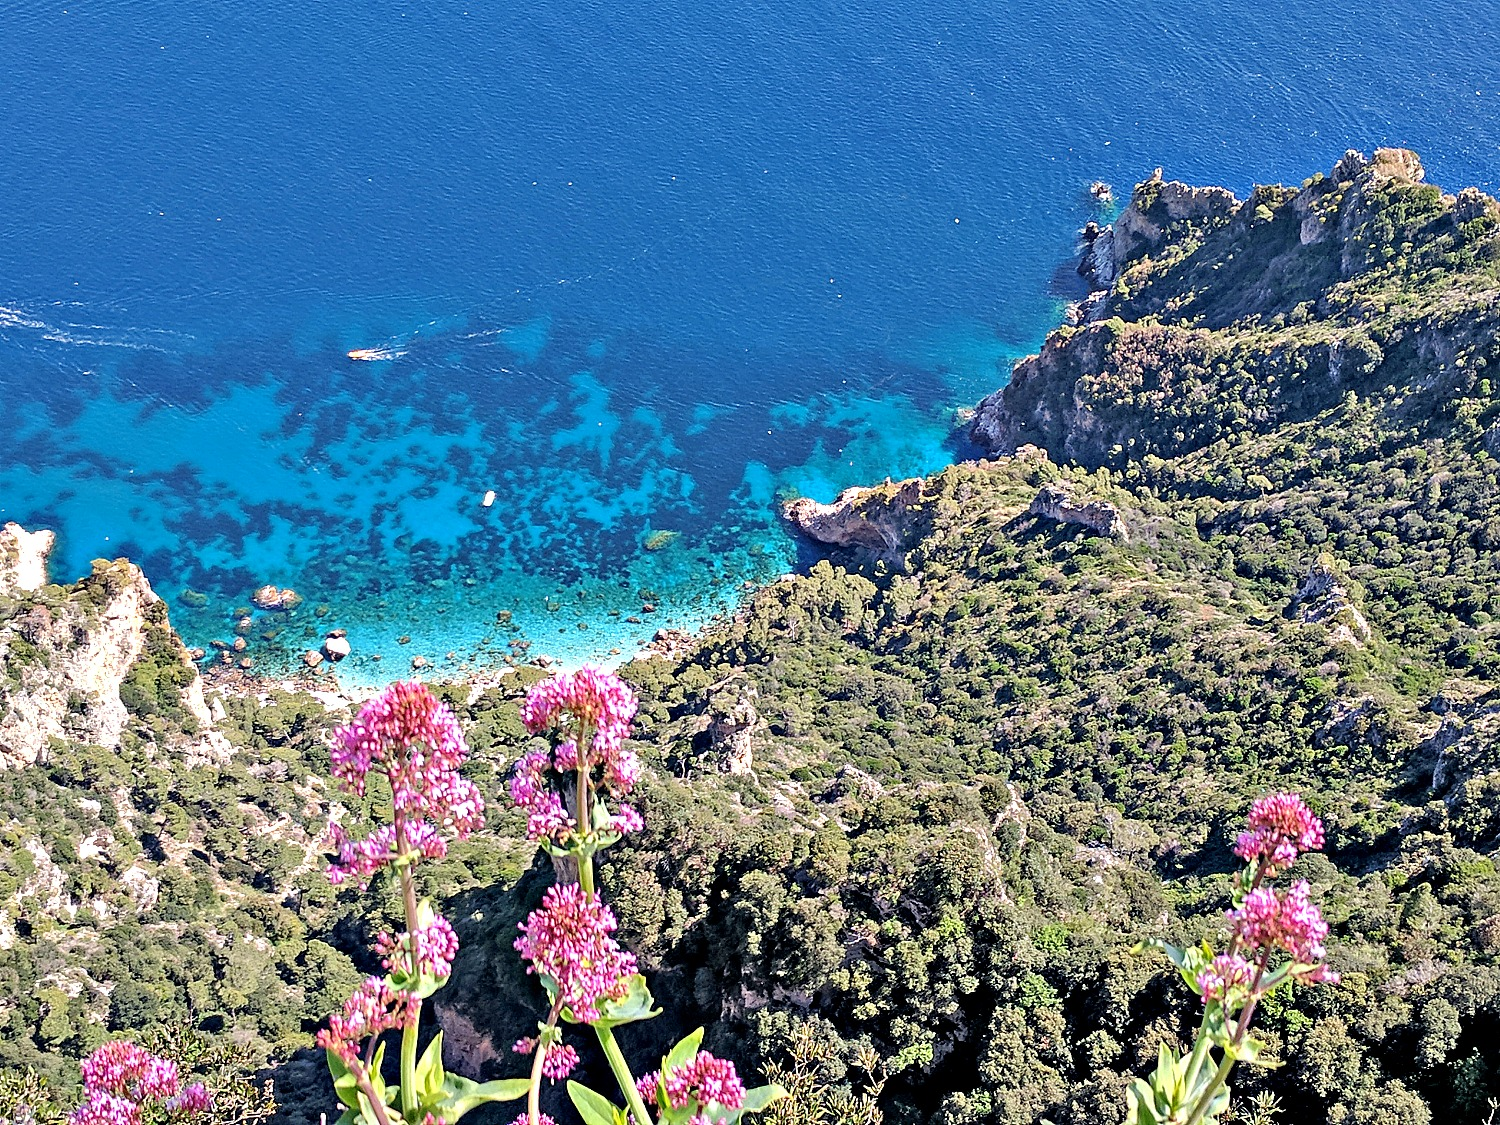 View of the coast below in Capri Italy.